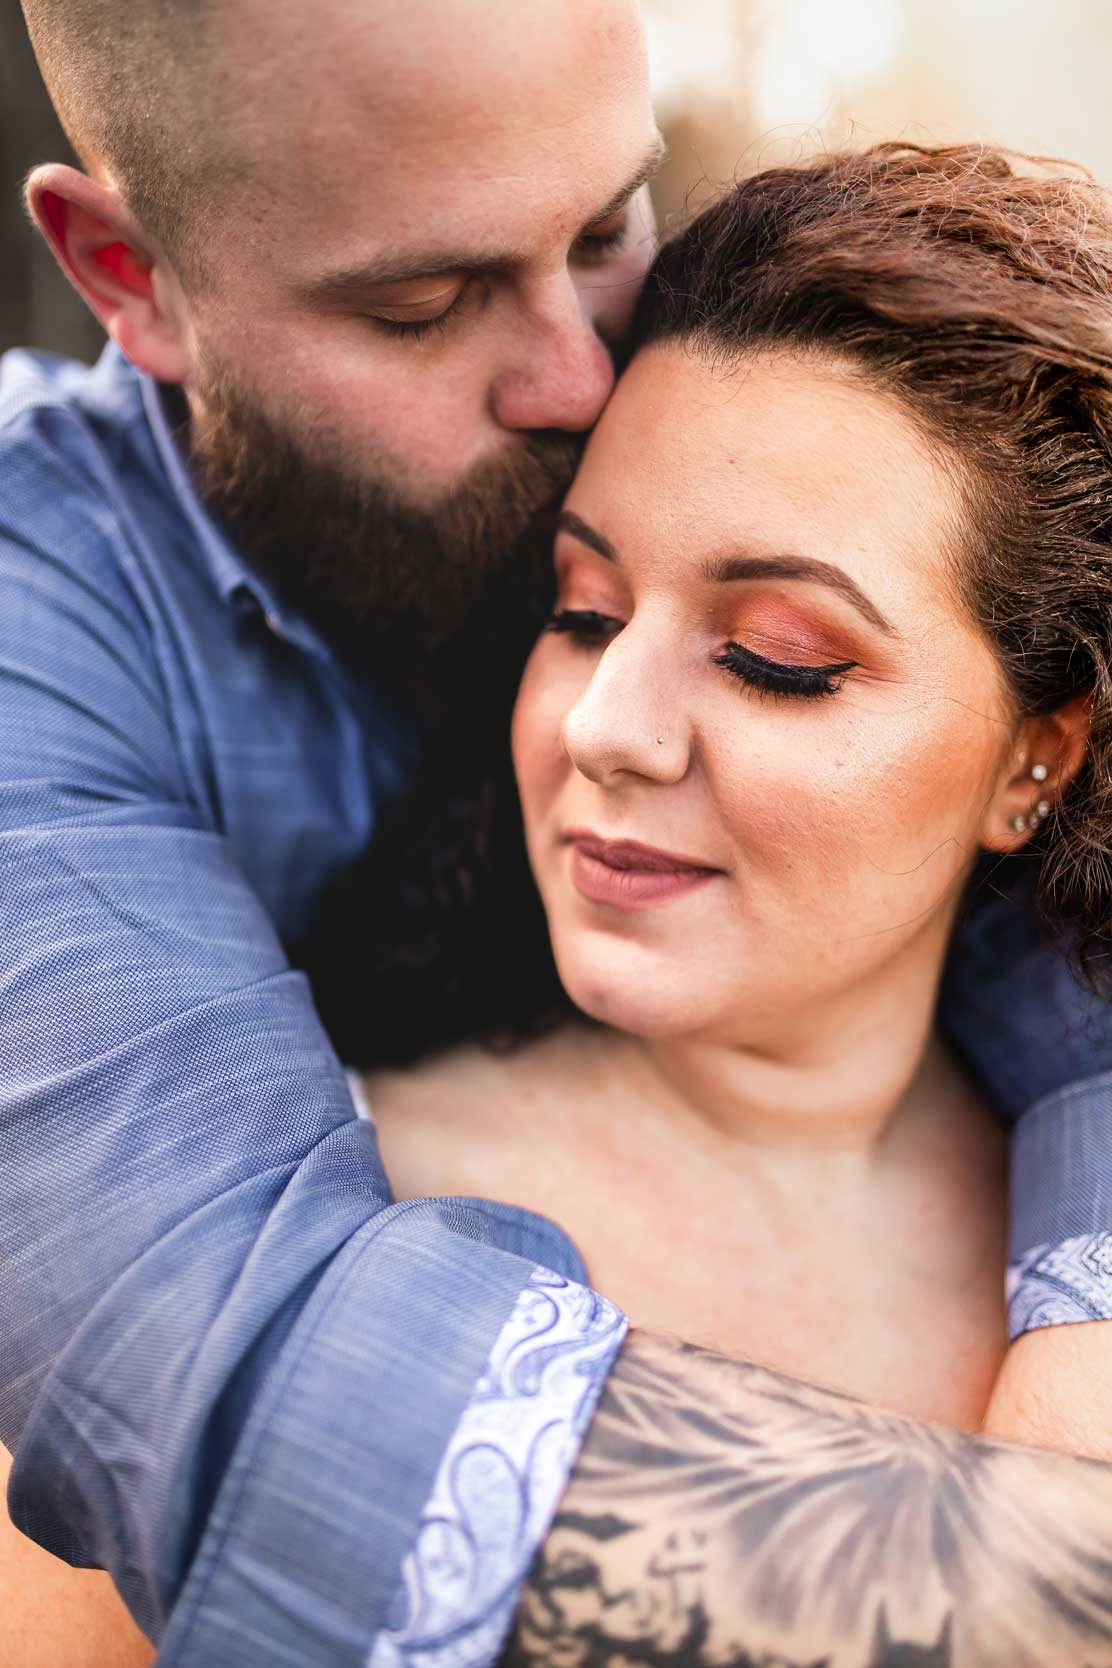 Amy-D-Photography--Maternity-Session--Outdoor-Maternity-Photo--Maternity-Poses--Maternity-Couple-Ideas--Spring-Maternity-Session--Maternity-Photography-23.jpg